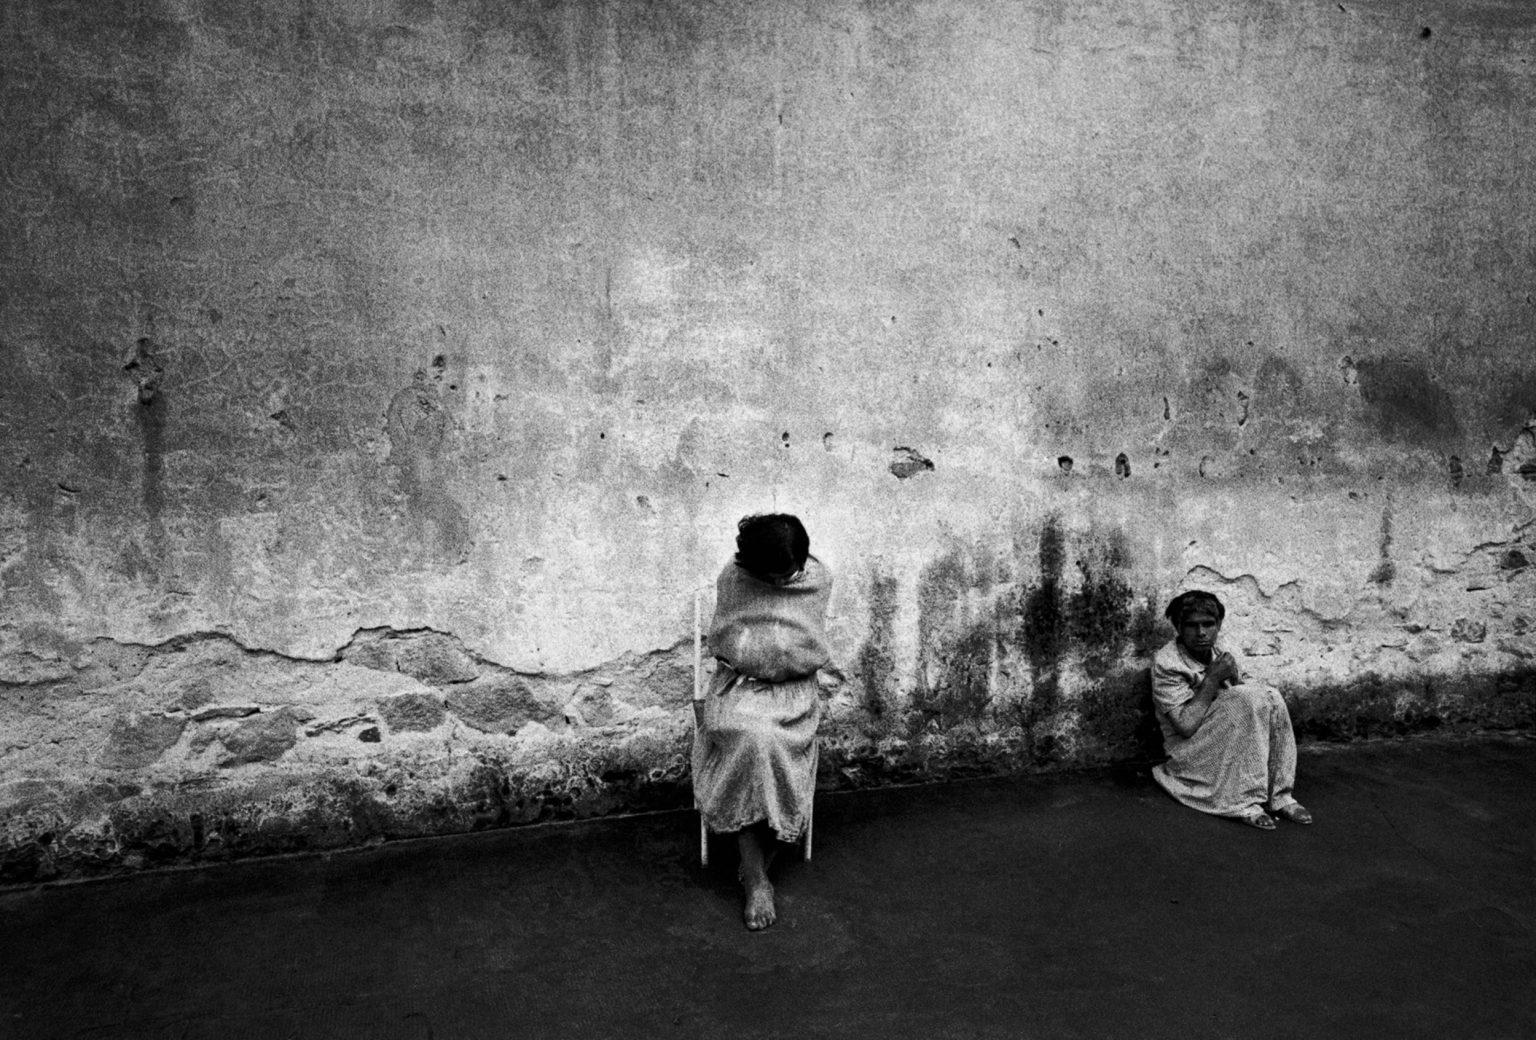 """Florence, 1968-1969 - Patients of the mental institution in the yard. ><  Firenze, 1968-1969 - Due pazienti dell'istituto psichiatrico nel cortile.<p><span style=""""color: #ff0000""""><strong>*** SPECIAL   FEE   APPLIES ***</strong></span></p>"""